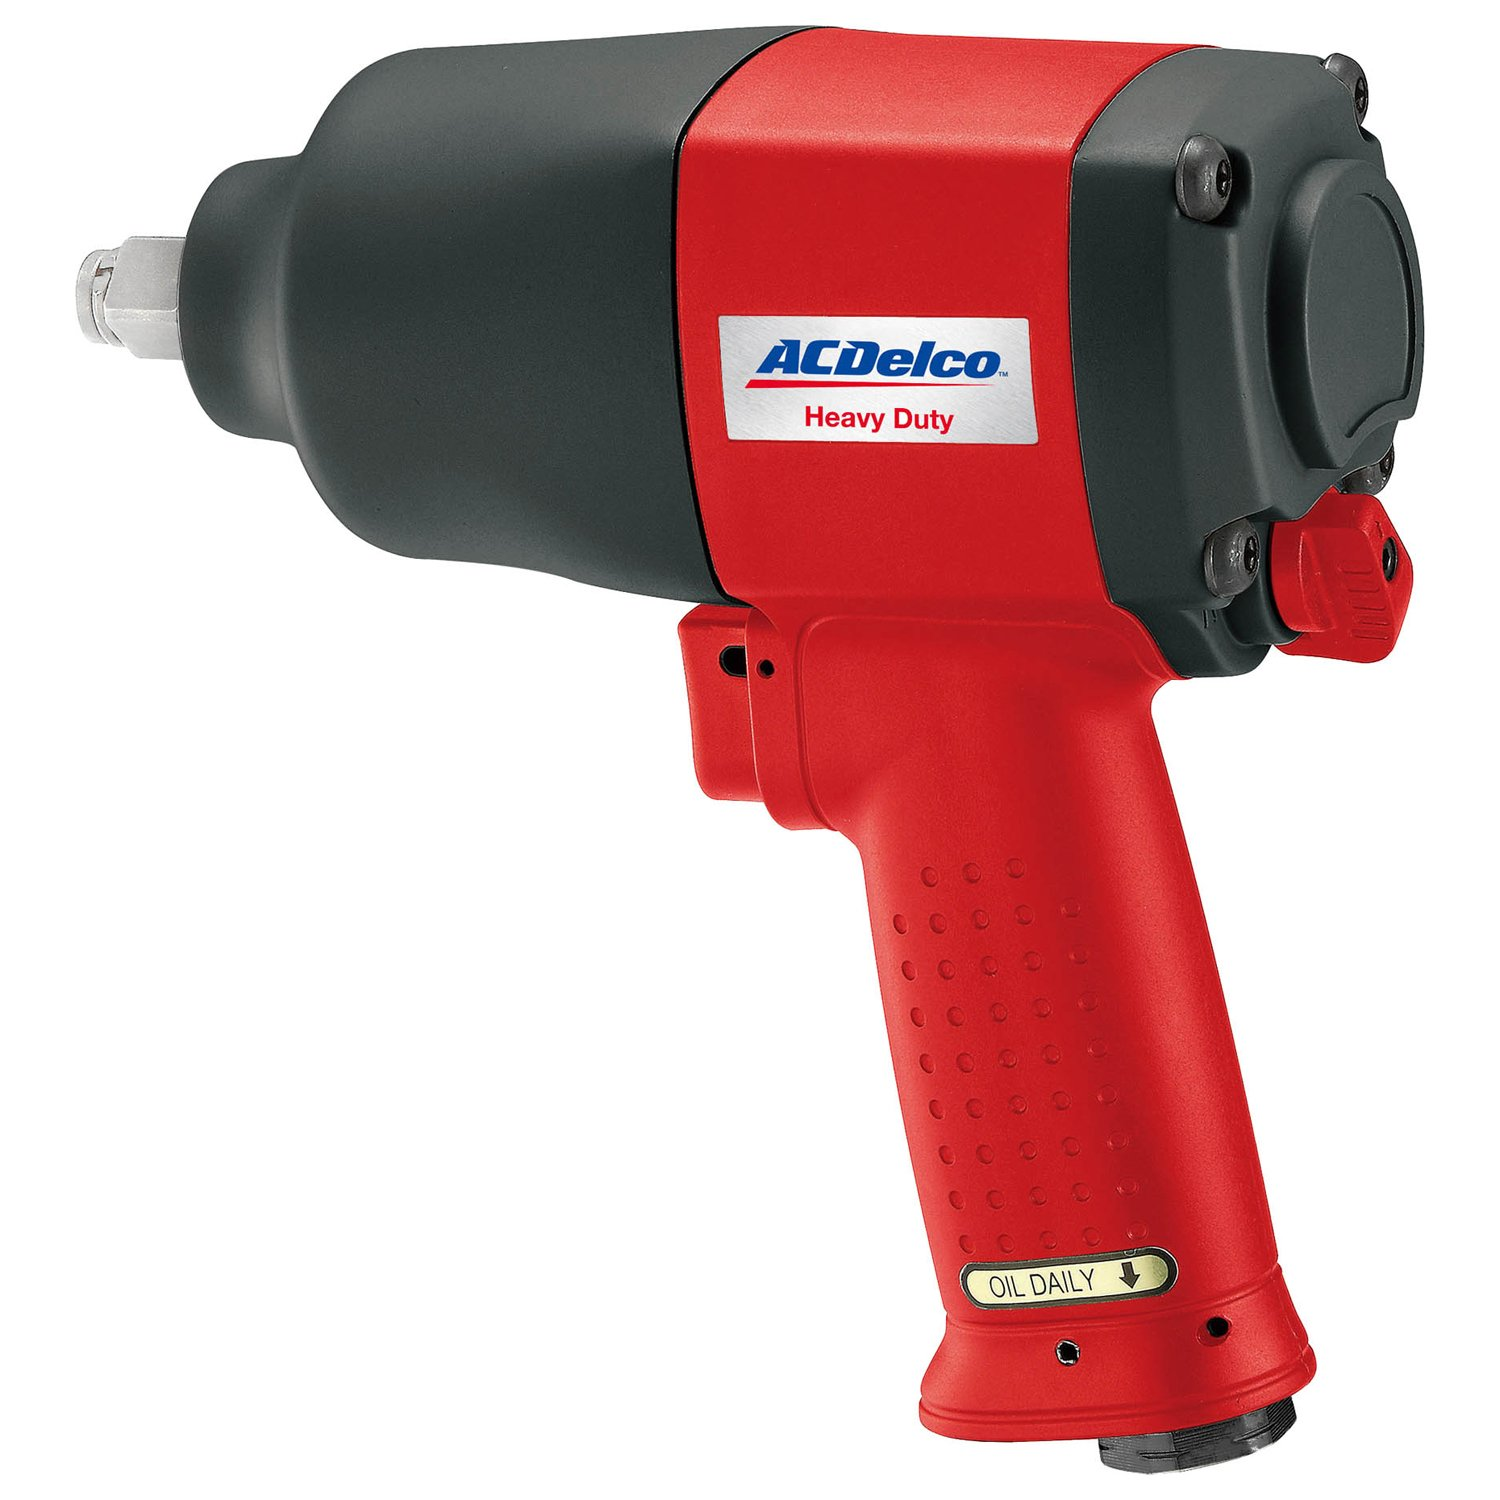 ACDelco BLOW-OUT OFFER Heavy Duty Twin Hammer 1 2 Air Impact Wrench with Composite Body and Comfort Grip, ANI402